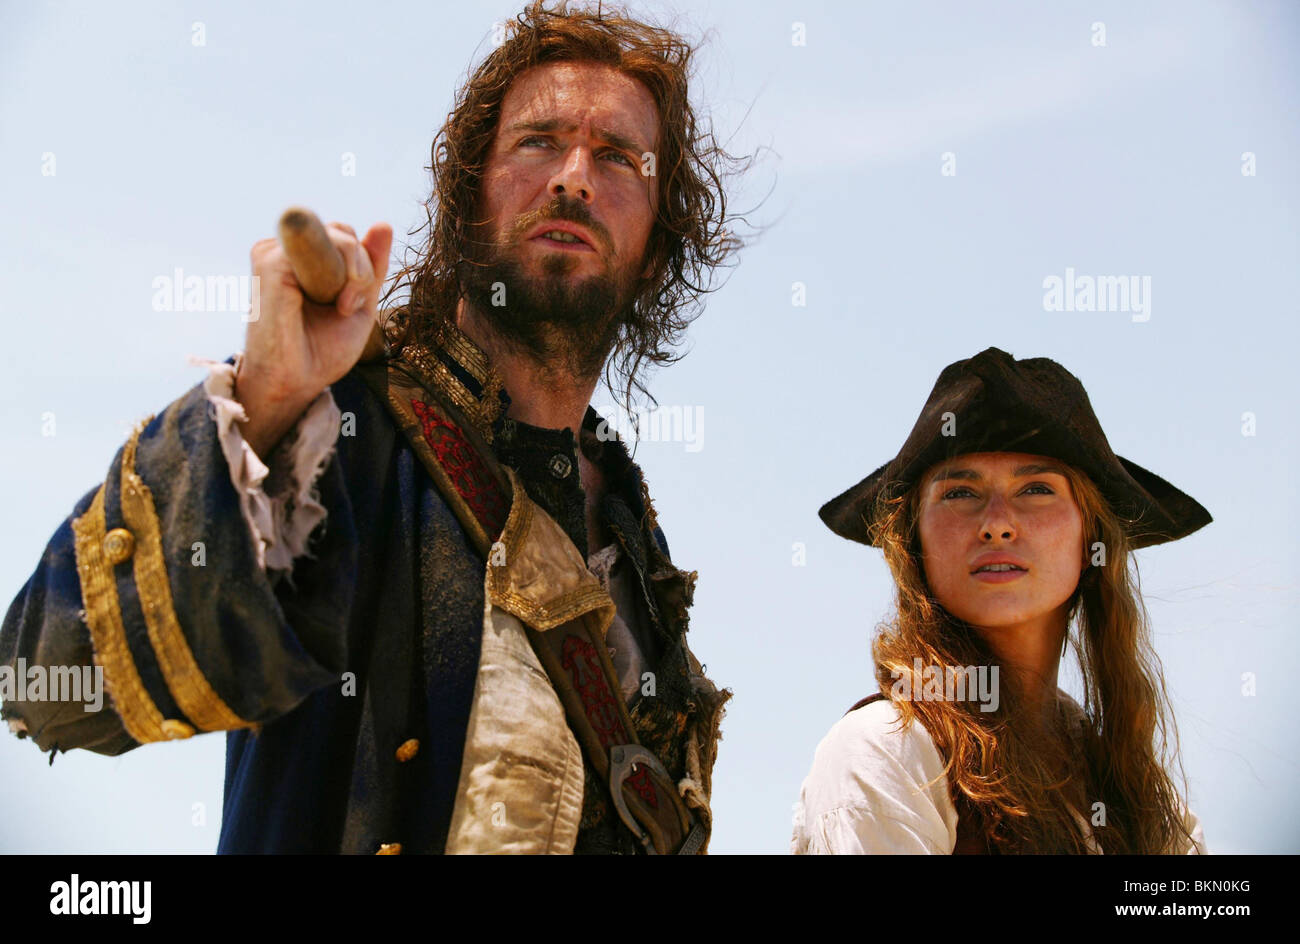 PIRATES OF THE CARIBBEAN: DEAD MAN'S CHEST (2006) JACK DAVENPORT, KEIRA KNIGHTLEY CREDIT DISNEY PDMC 001-22 - Stock Image